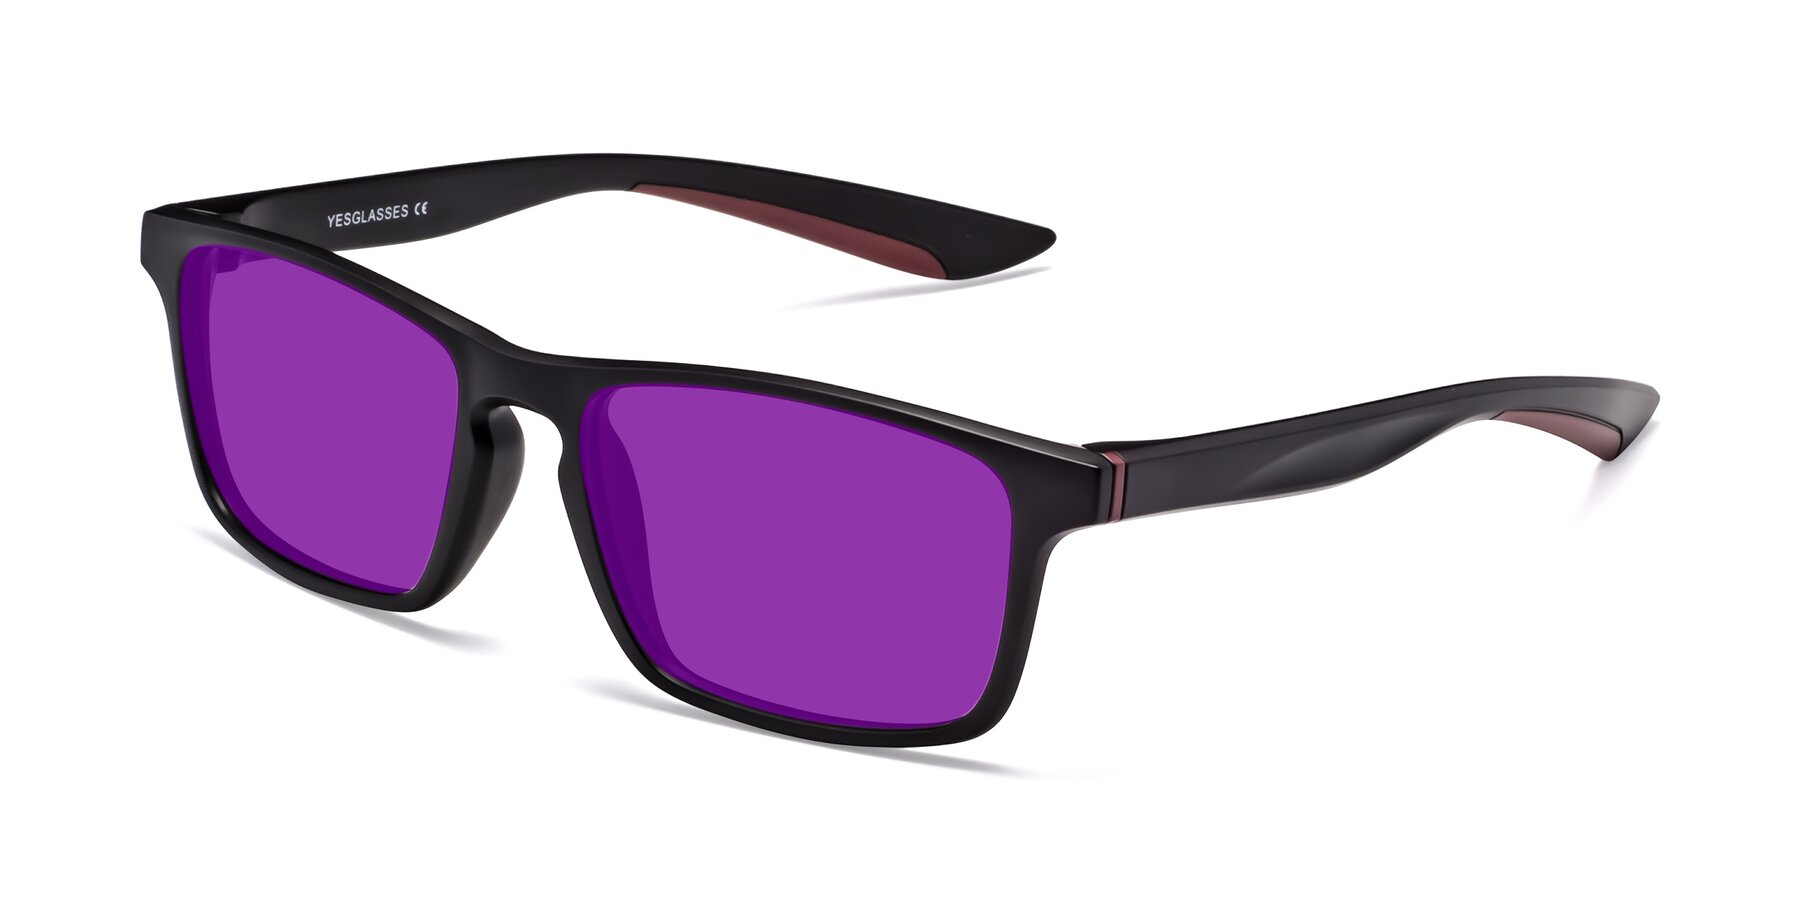 Angle of Passion in Matte Black-Wine with Purple Tinted Lenses